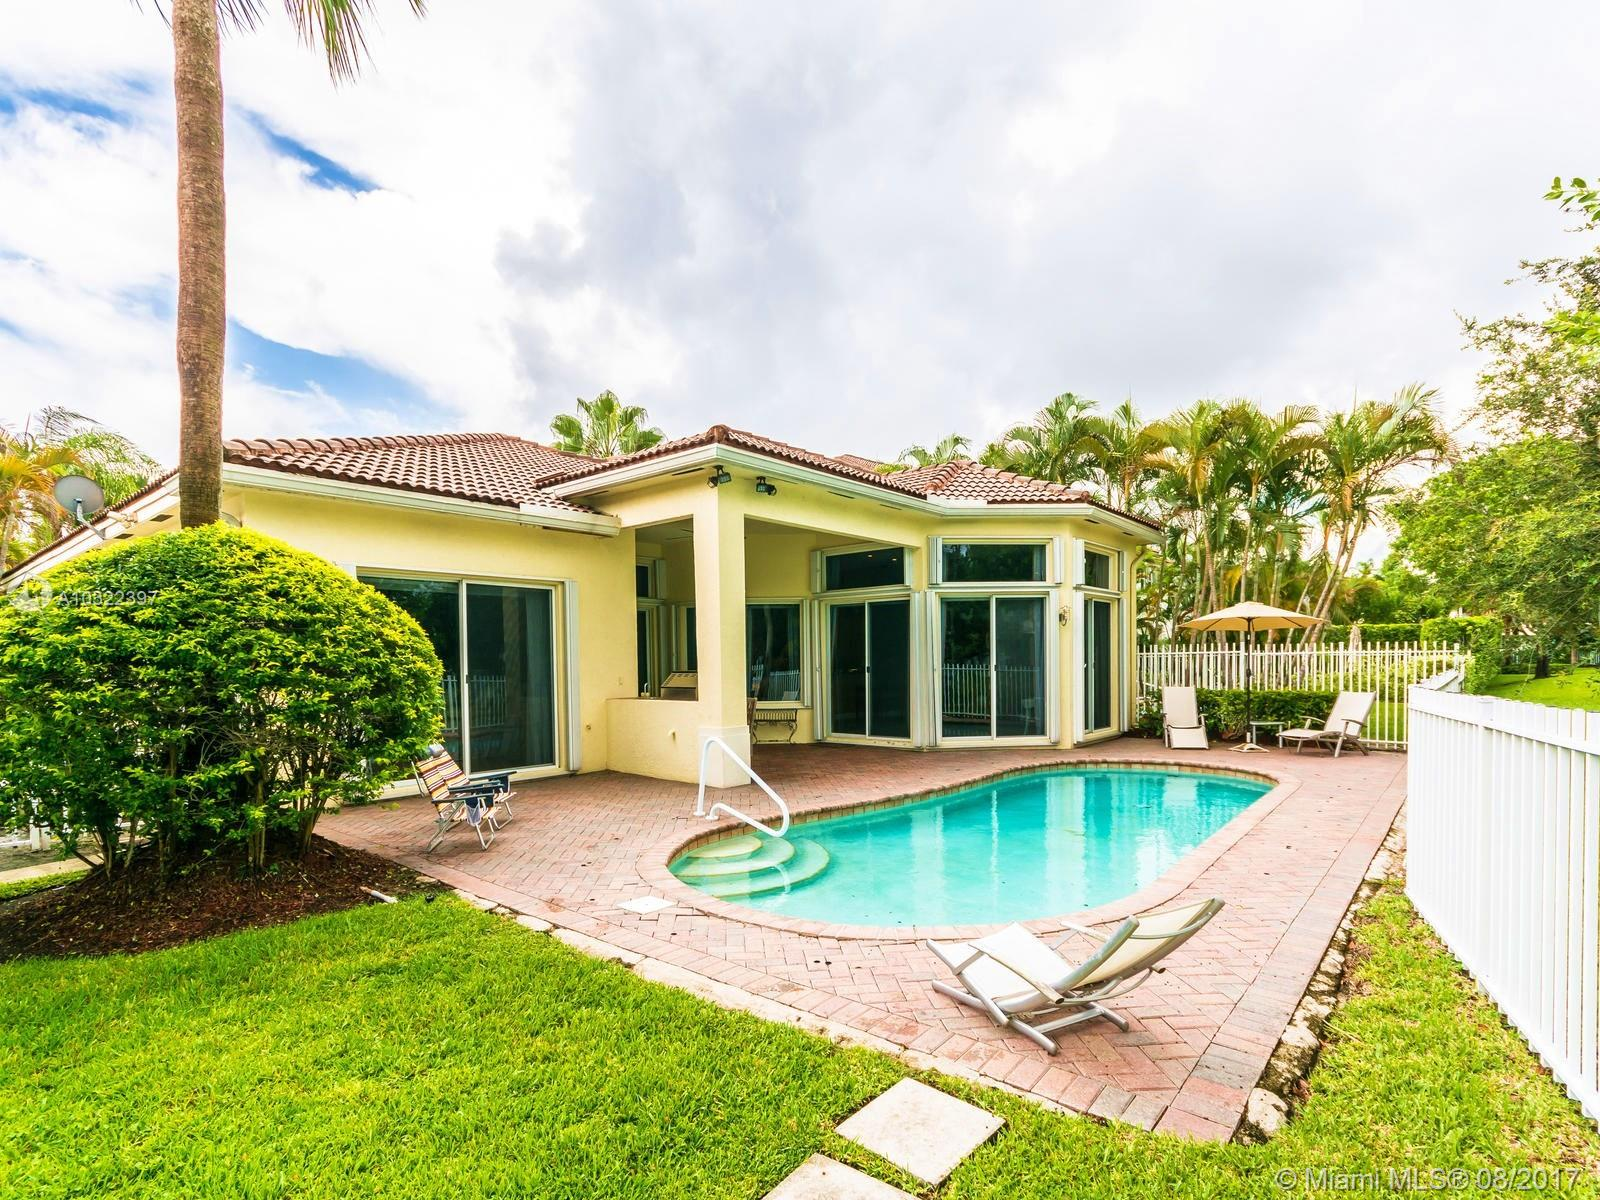 1591 Presidential Way, Miami FL, 33179